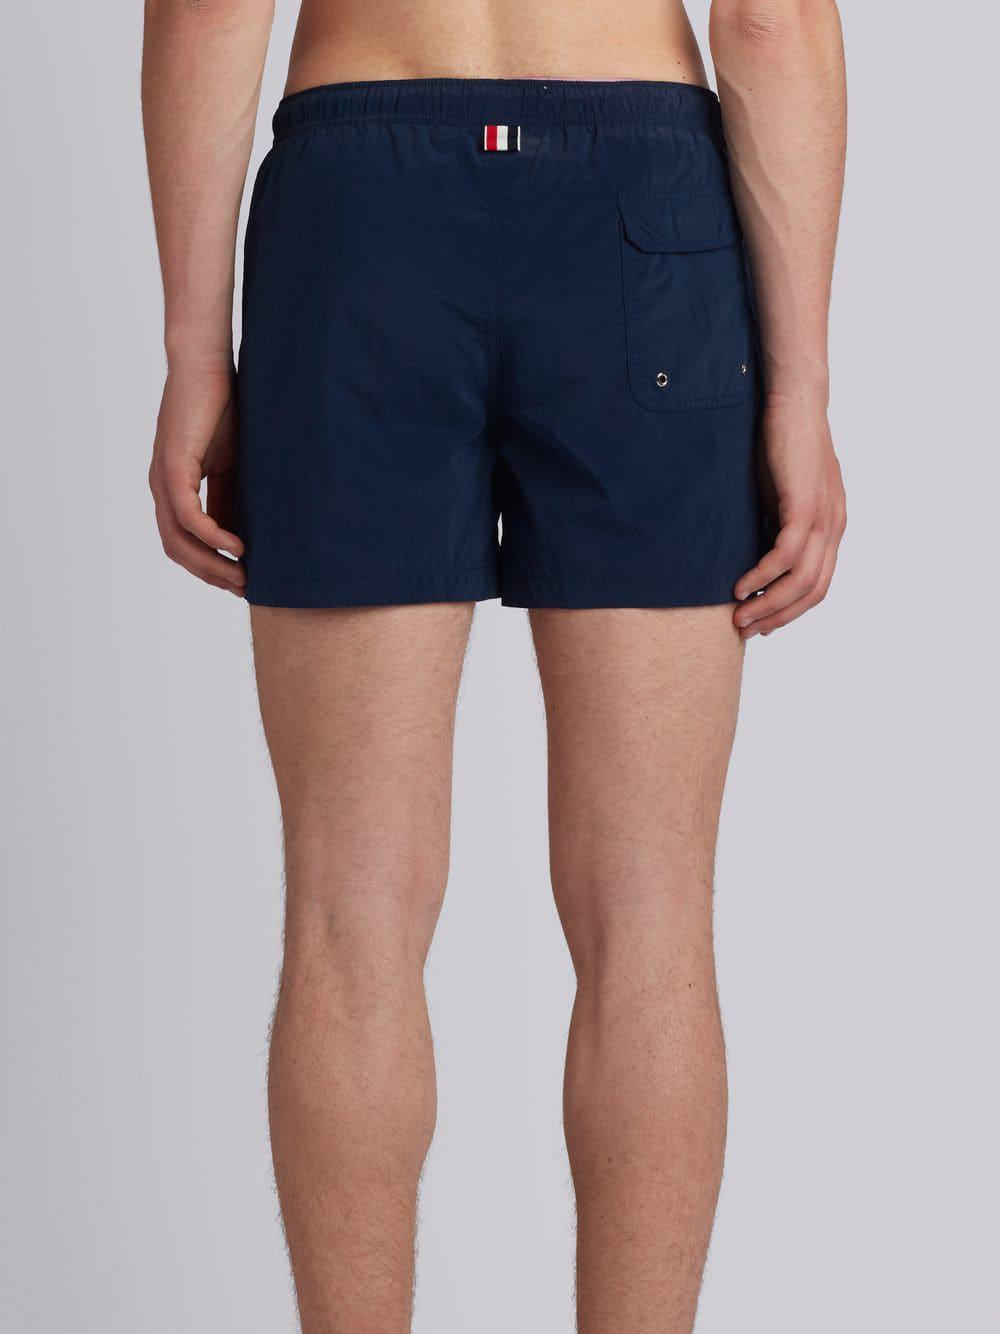 9b68595c4bf9e Thom Browne Classic Swim Trunk With Red, White And Blue Grosgrain Side Seam  In Navy